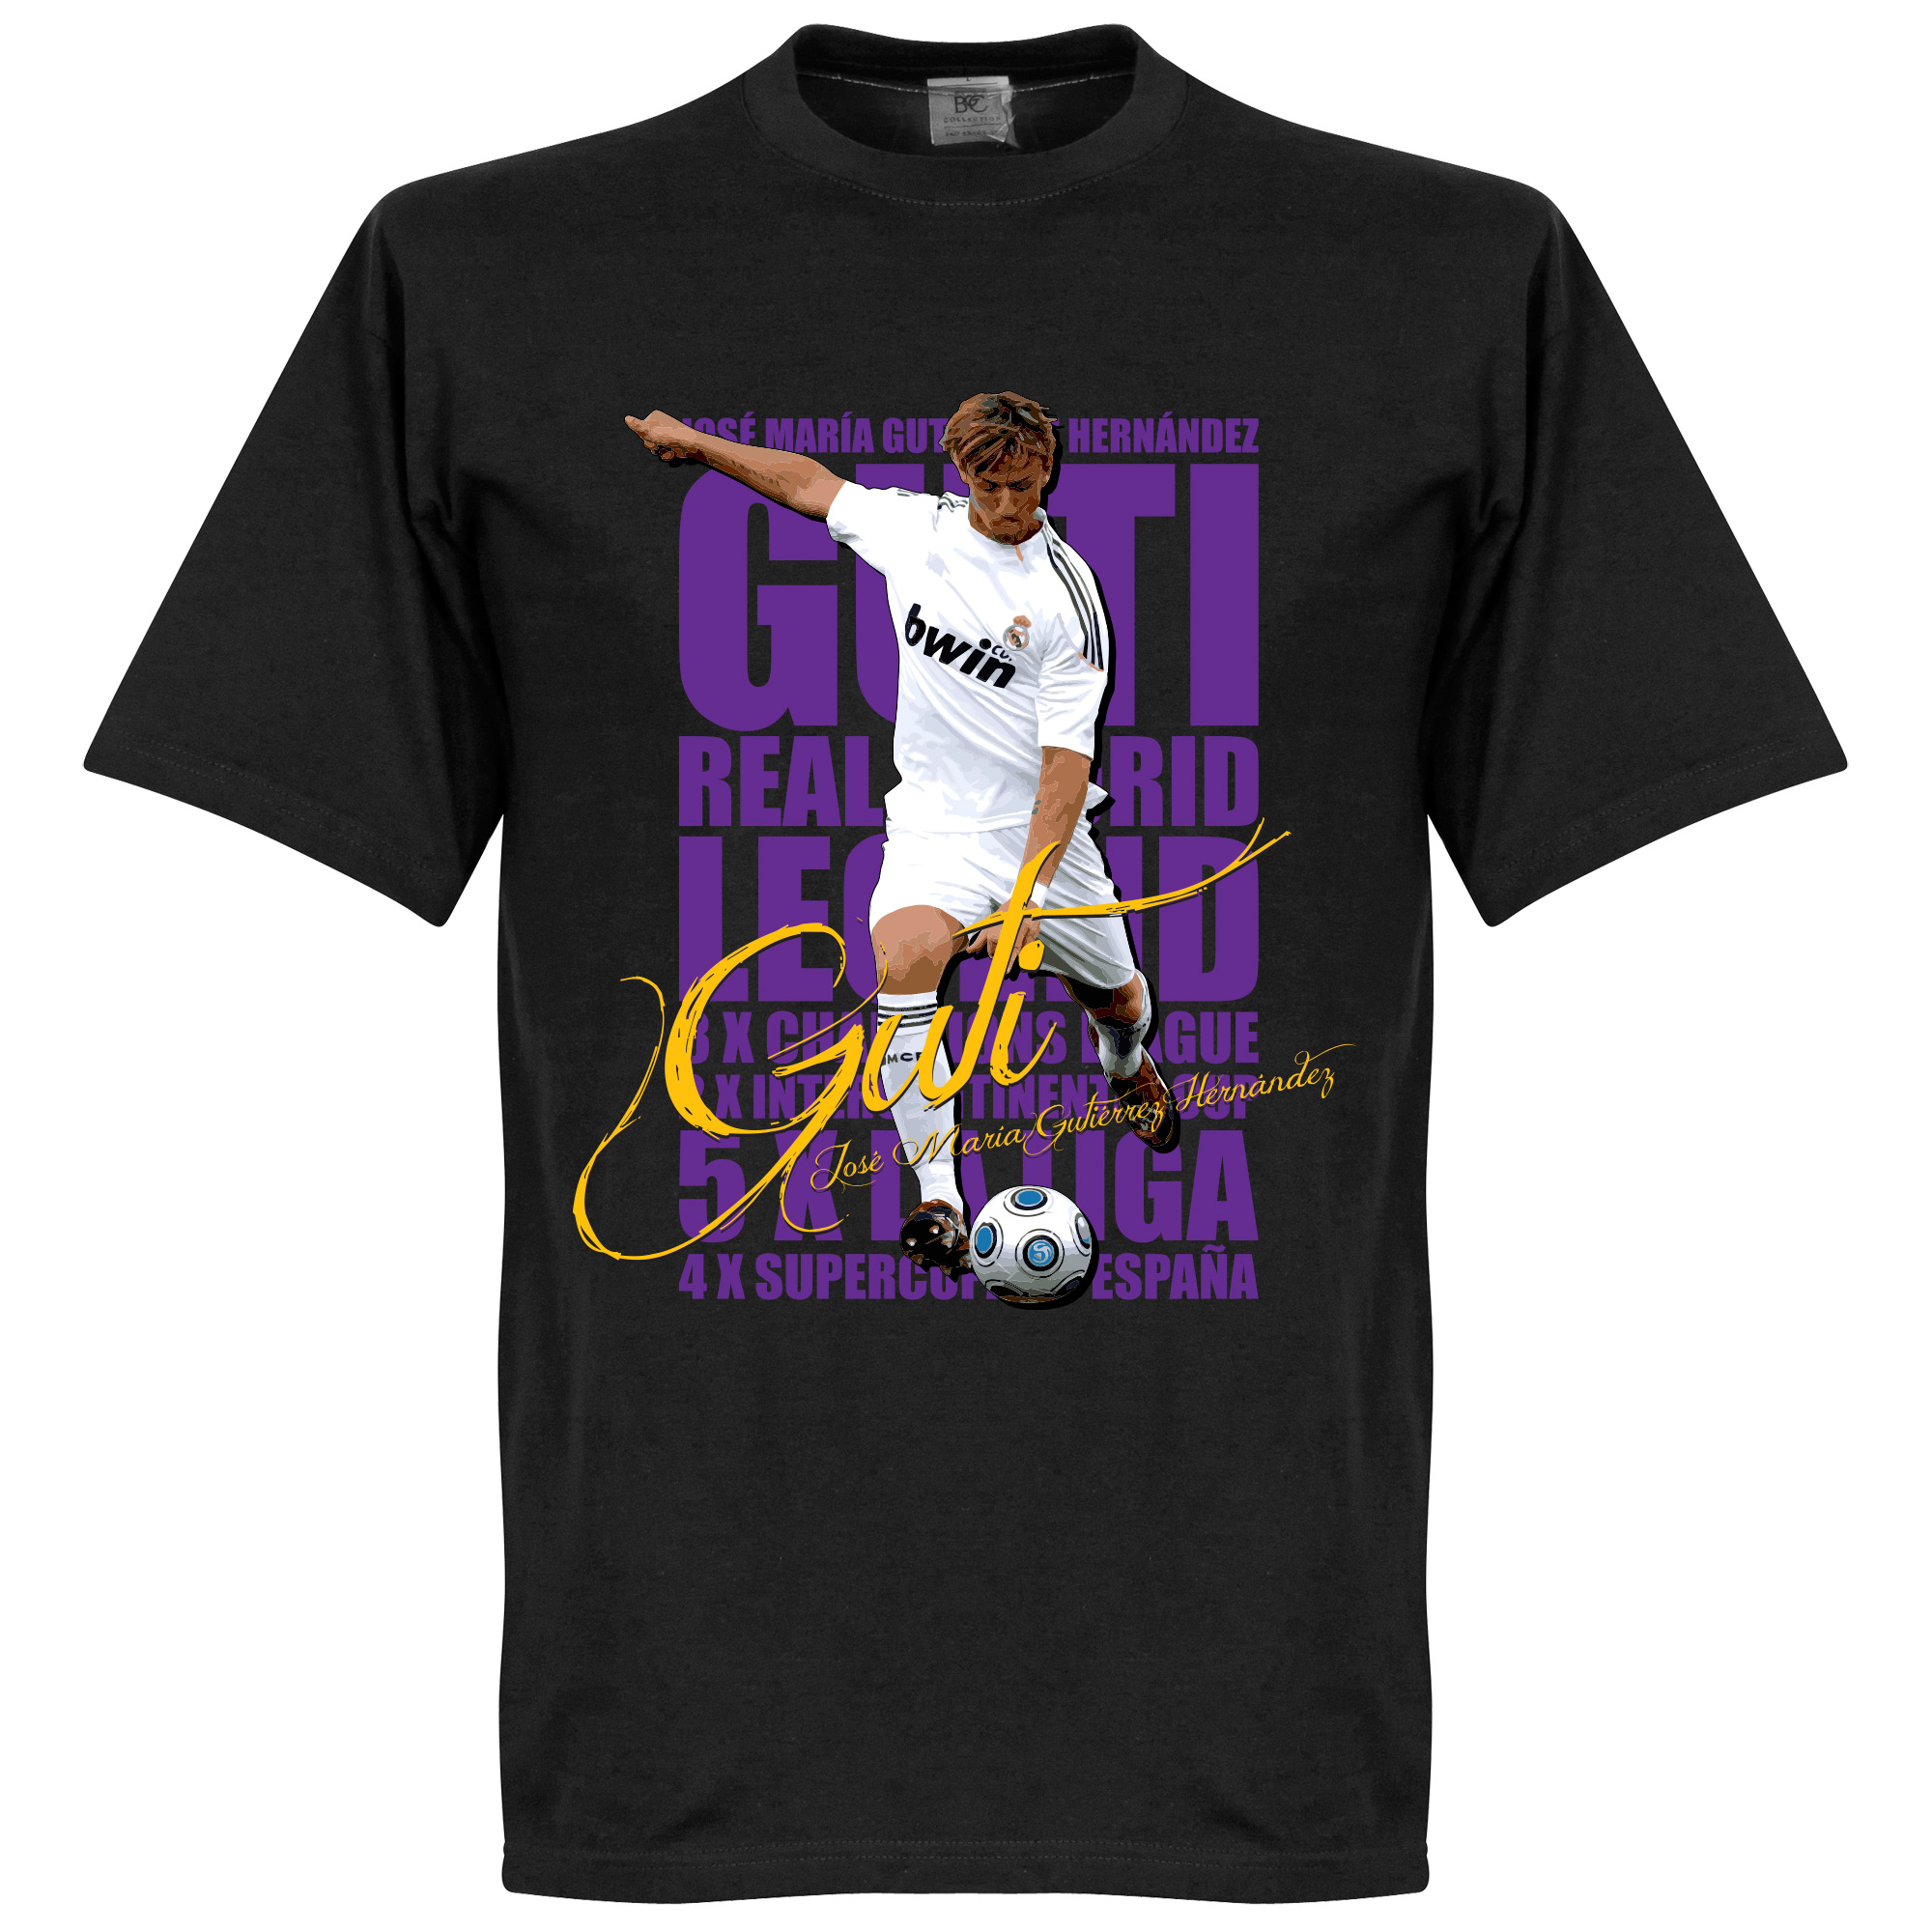 Guti Legend Tee - Black - M